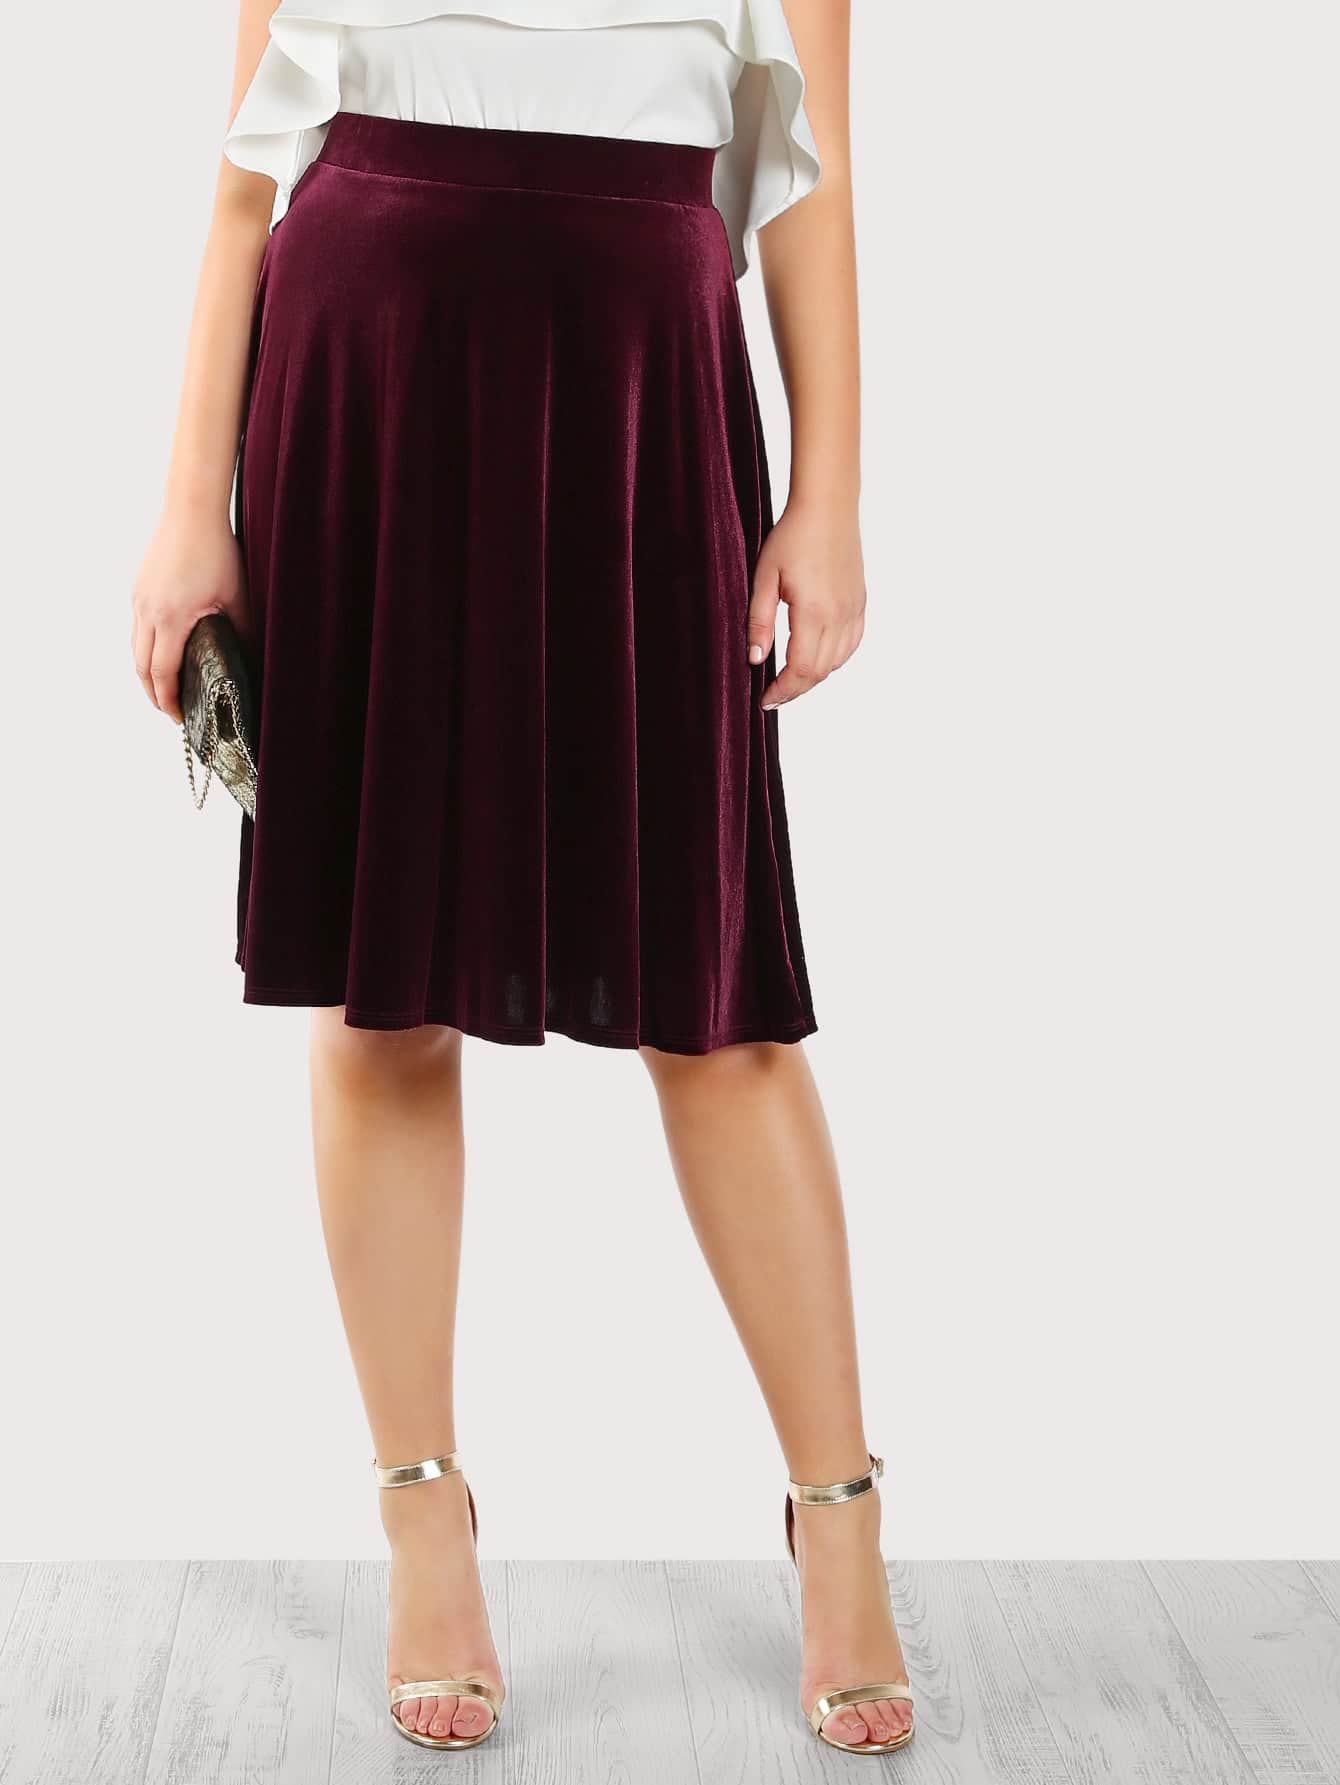 Image of High Rise Velvet Skirt